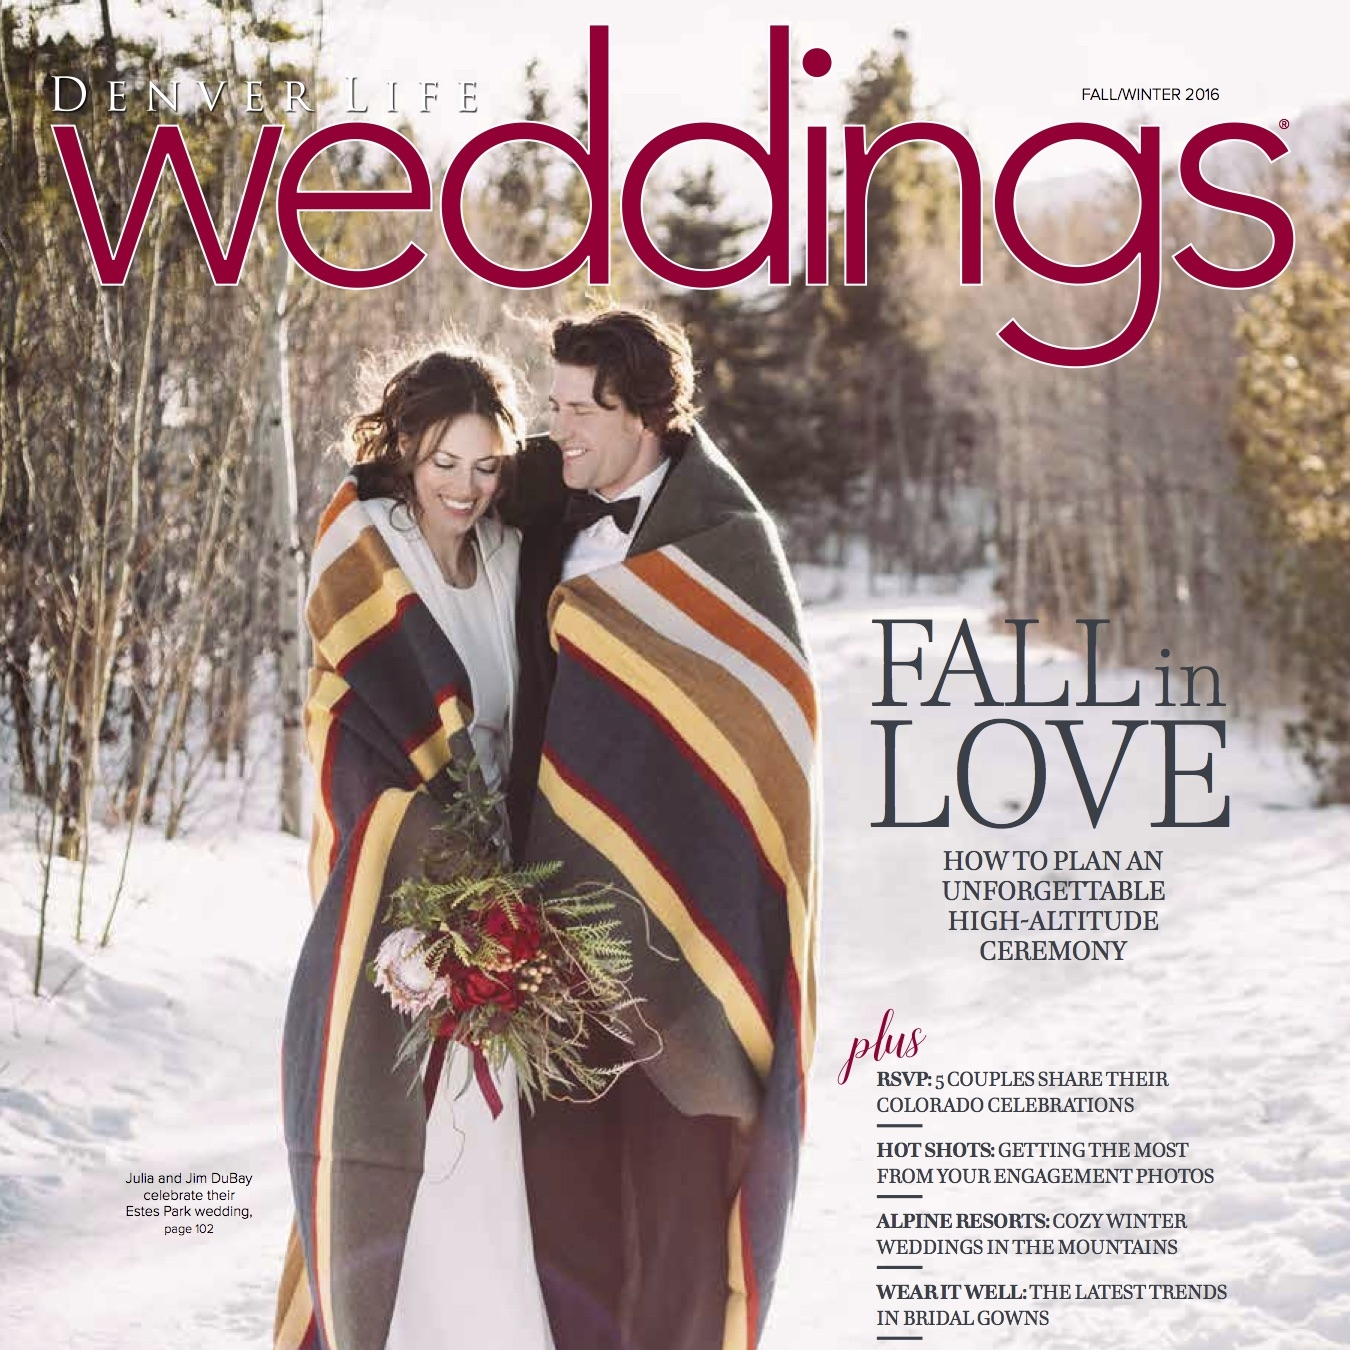 In the Press: Denver Life Weddings